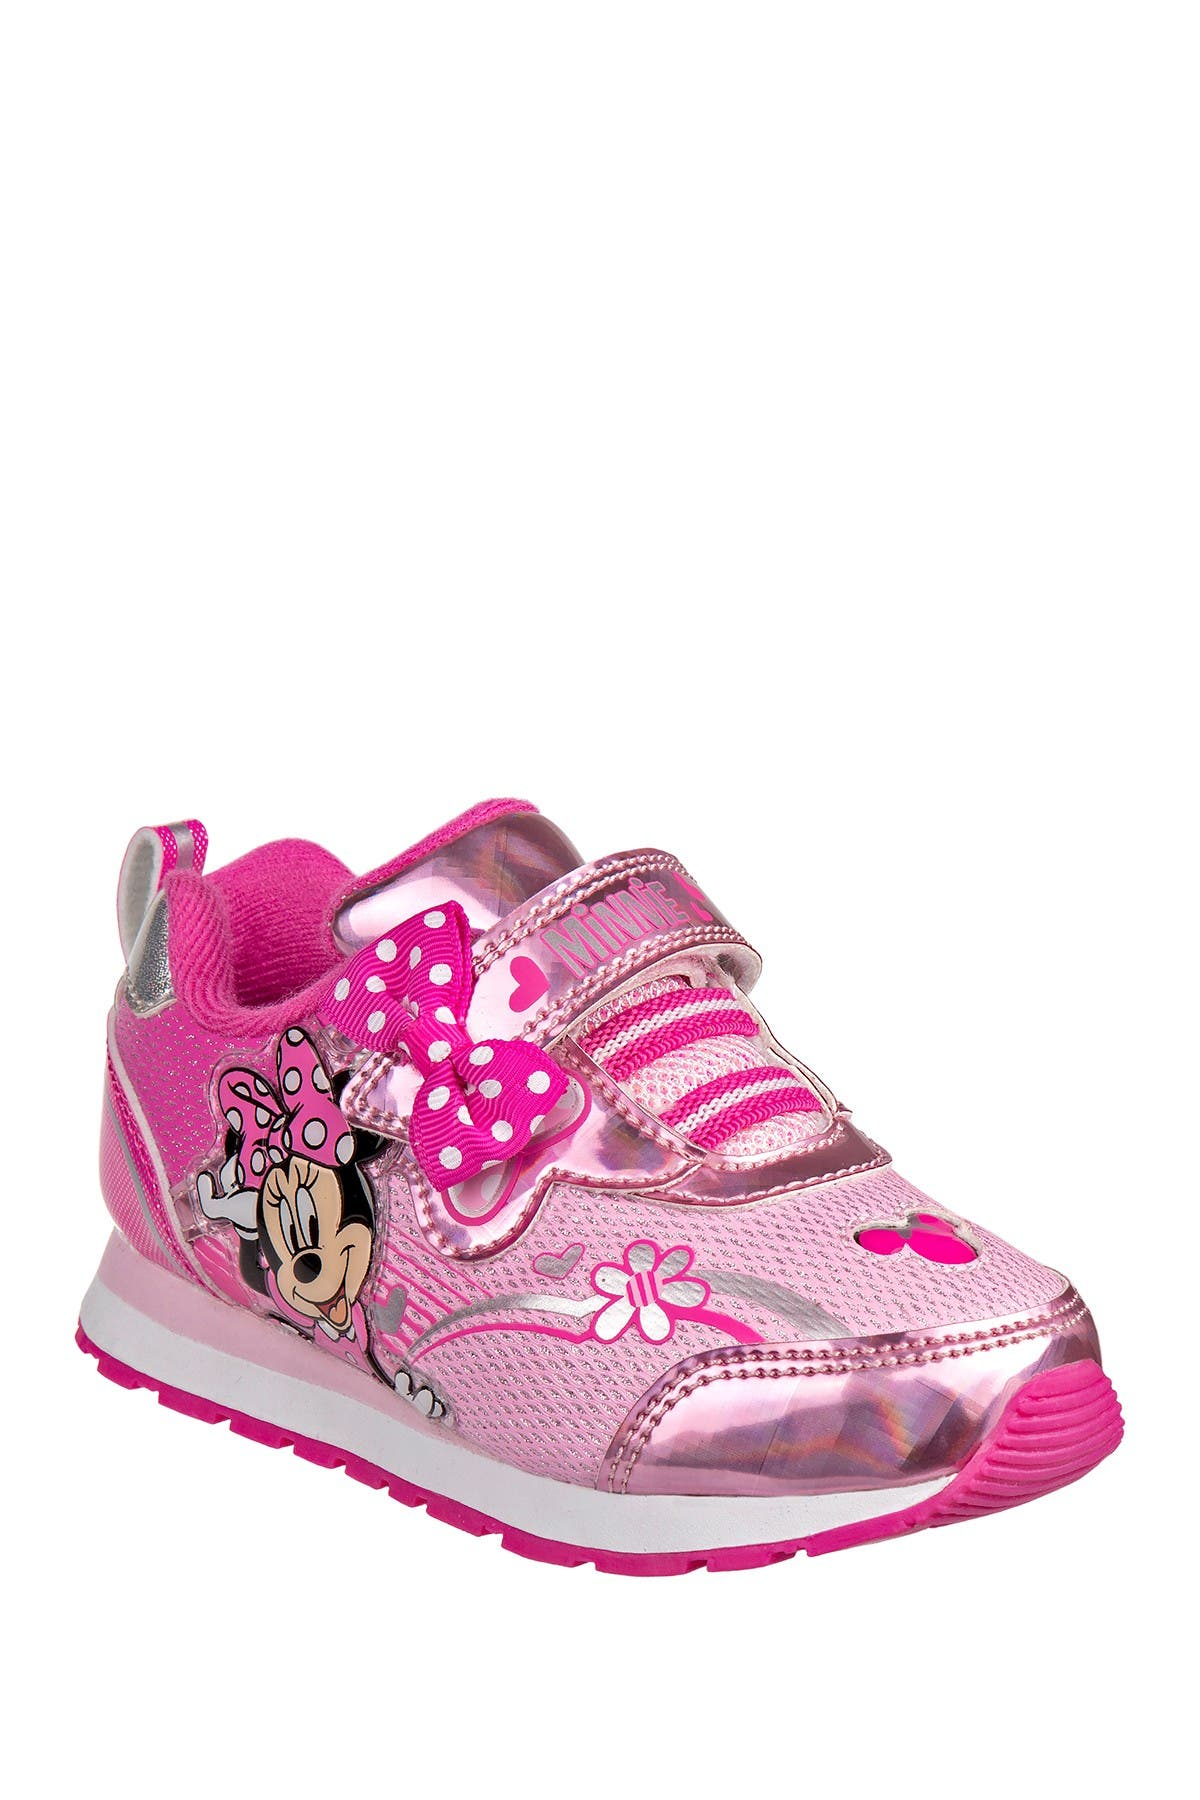 Image of Josmo Minnie Mouse Sneaker